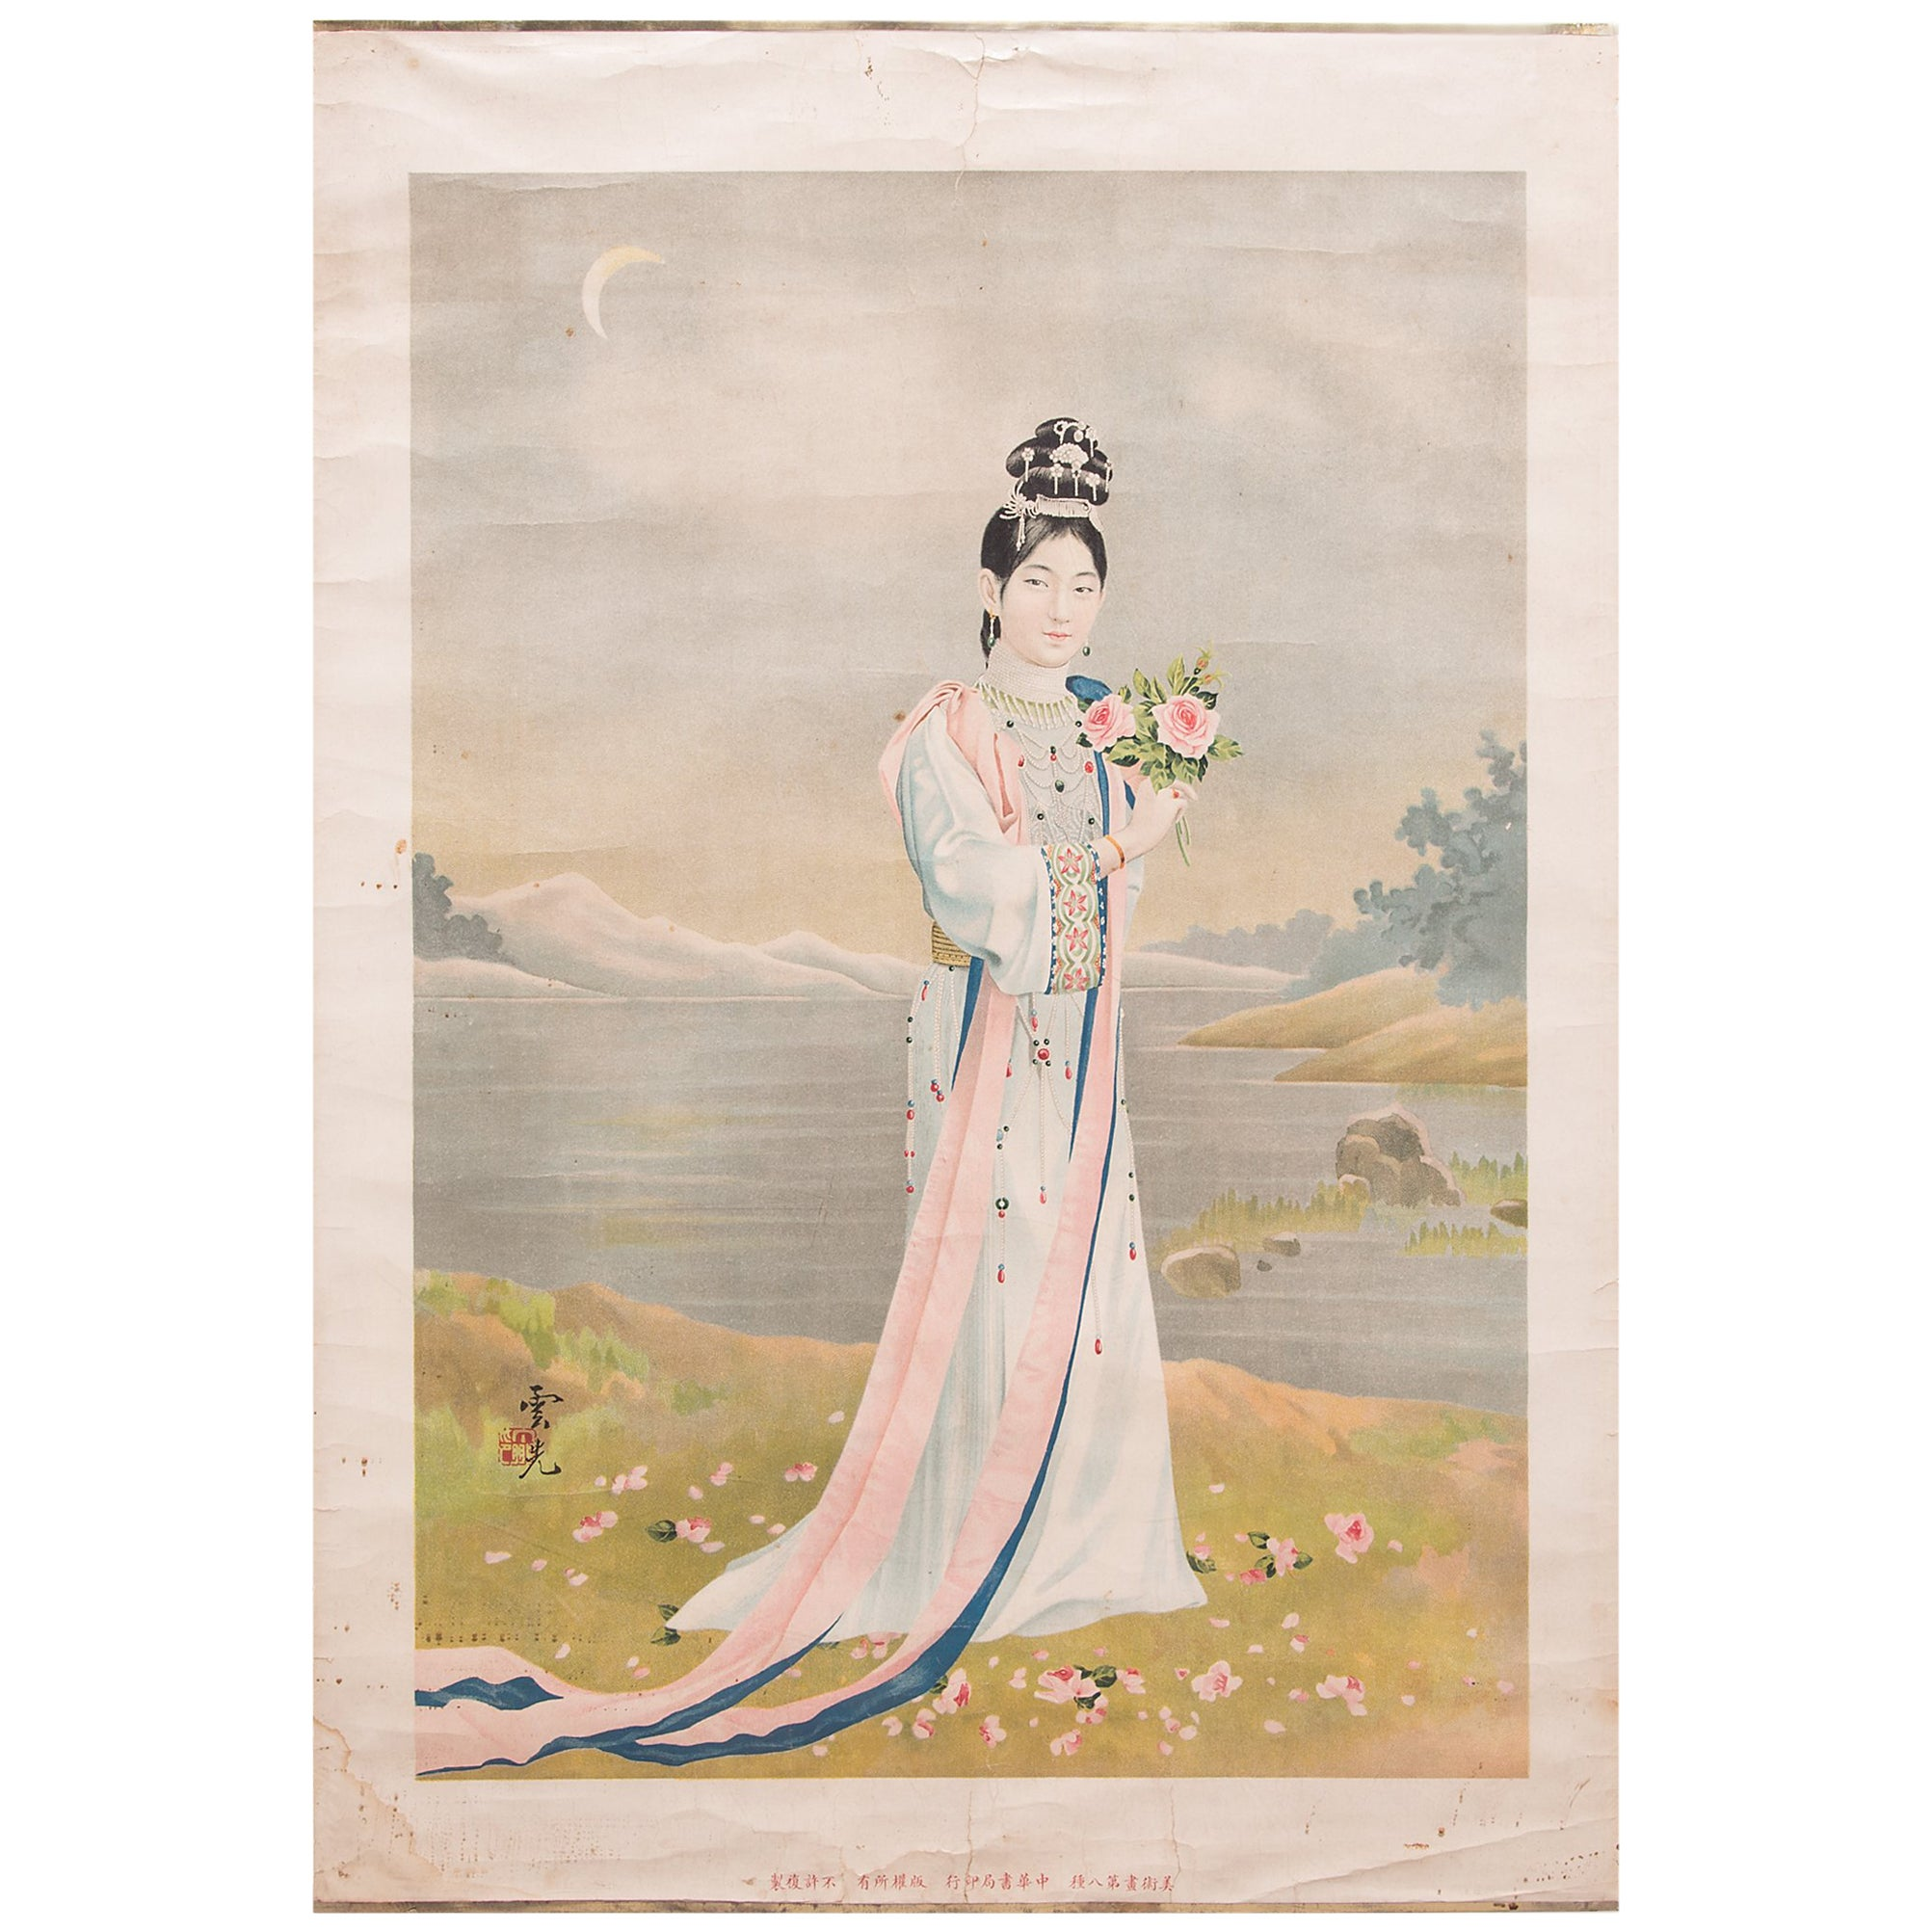 Vintage Chinese Deco Poster